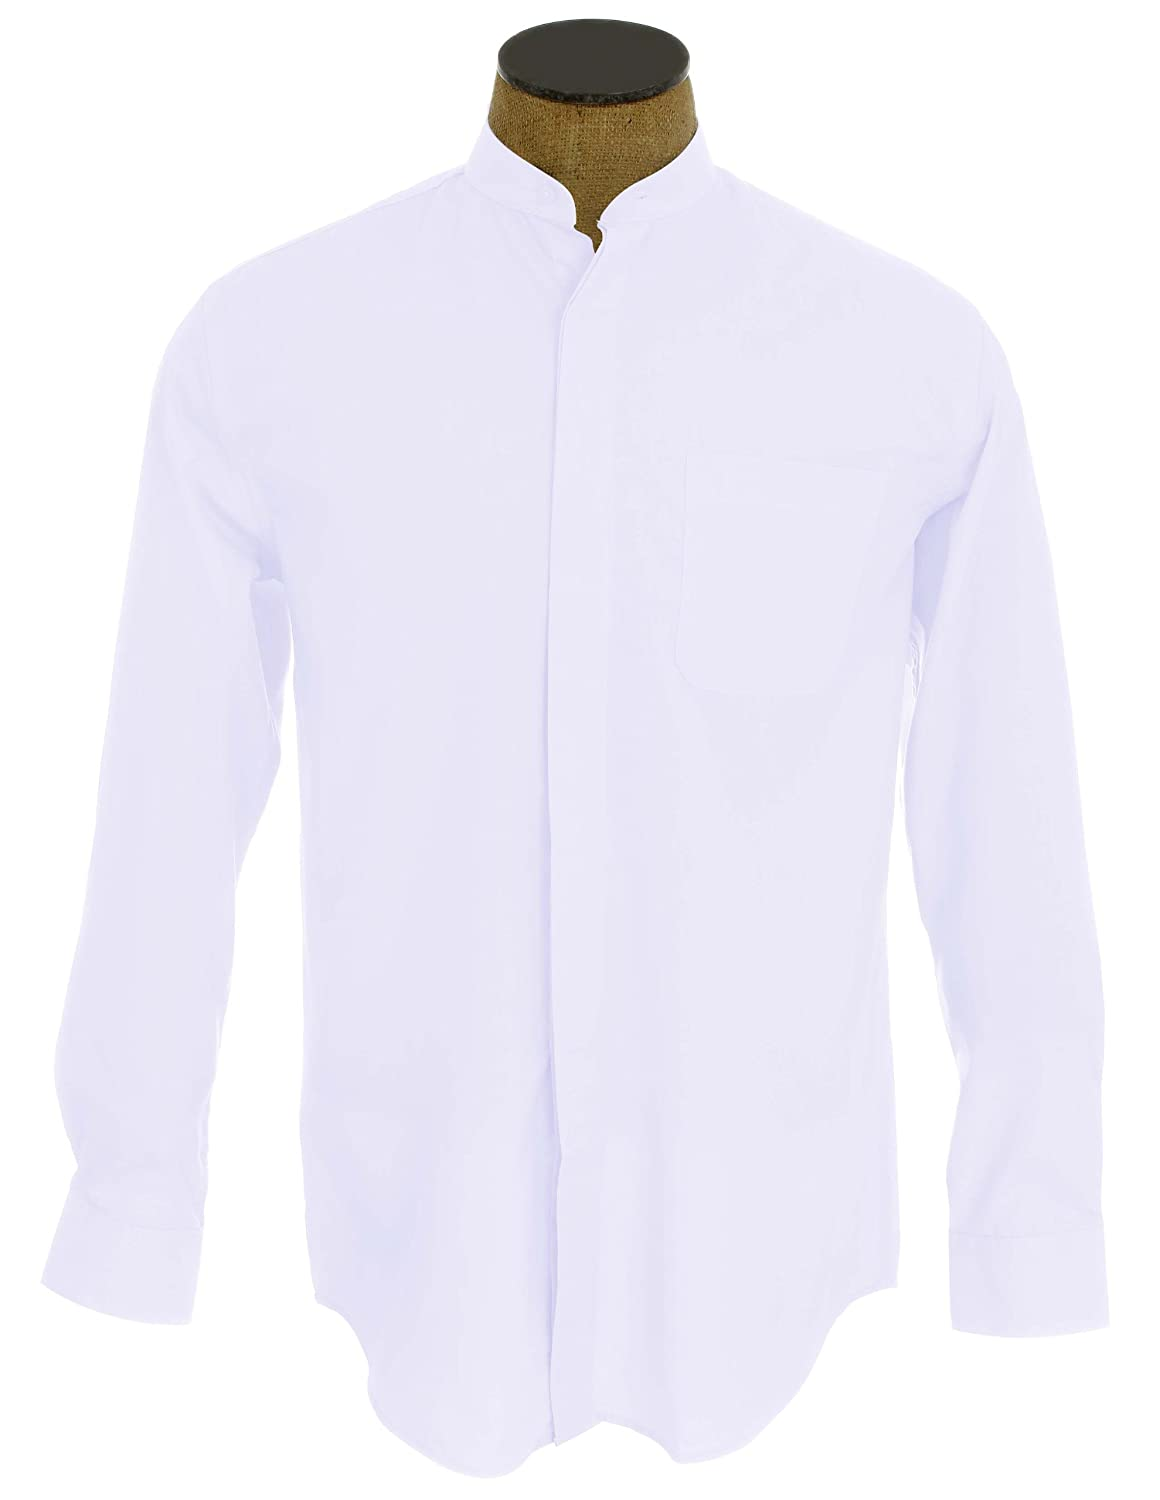 1920s Mens Evening Wear Step By Step Banded Collar Dress Shirt $21.95 AT vintagedancer.com